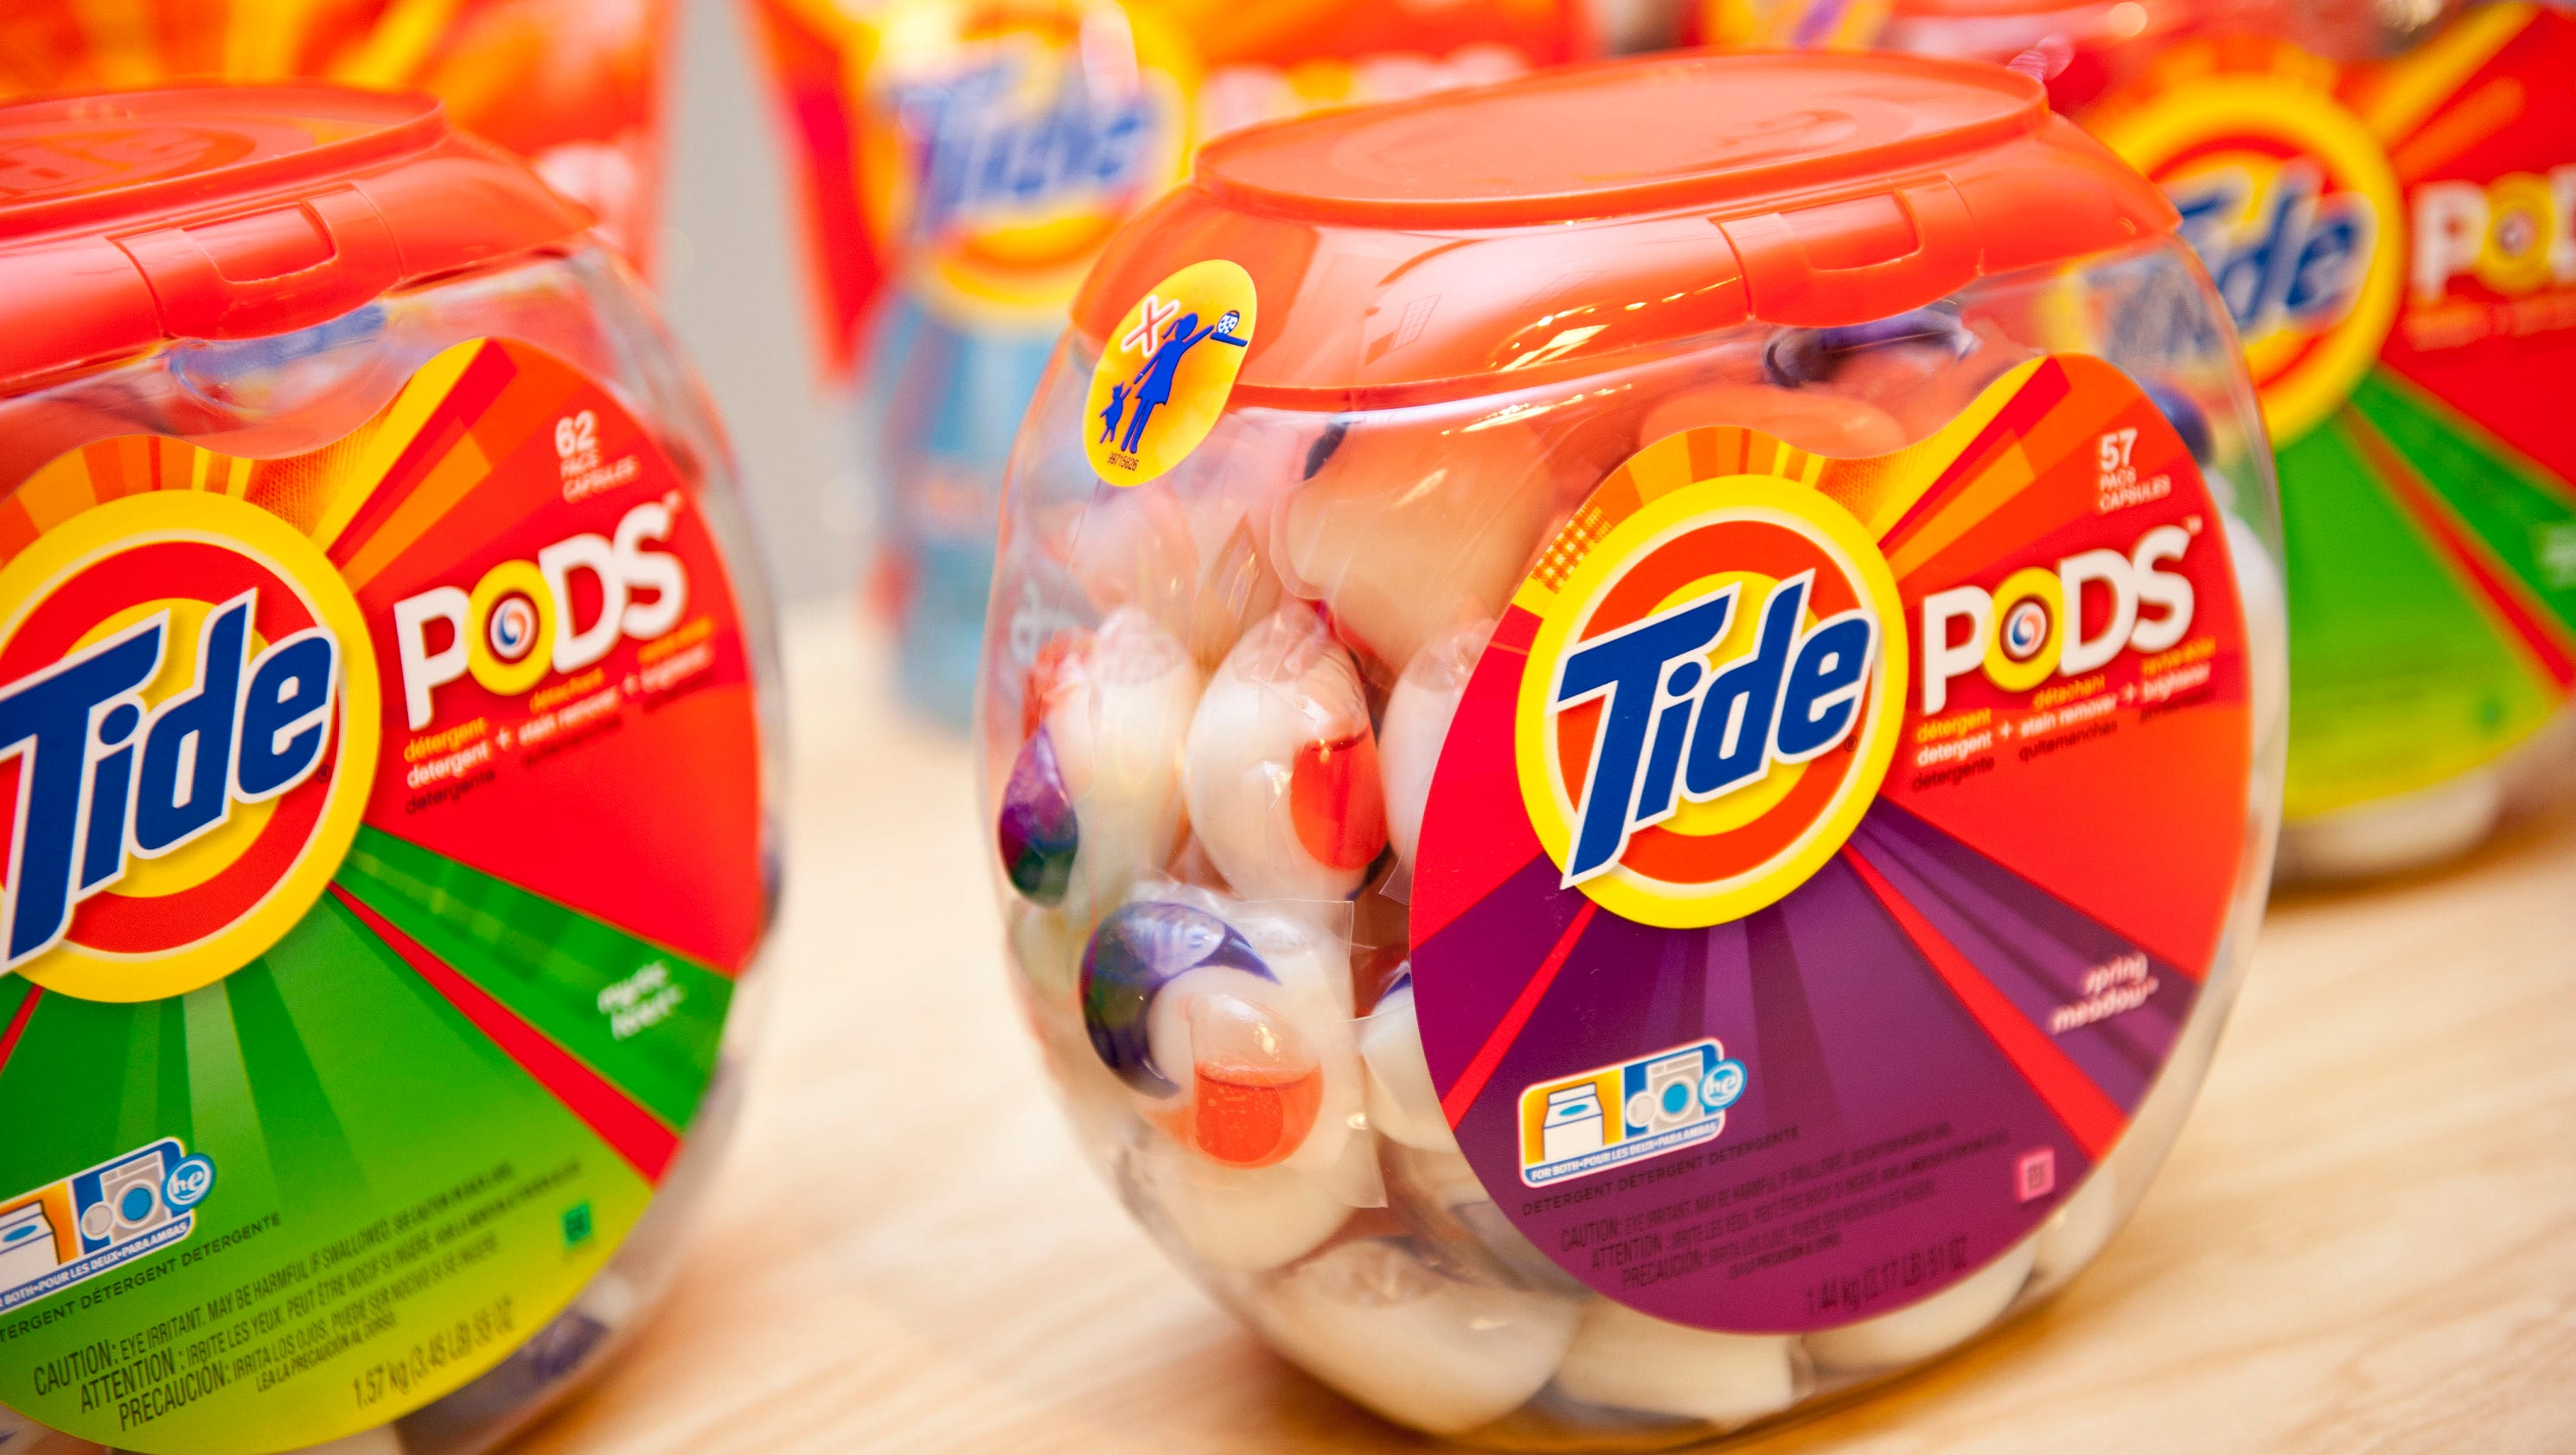 Pods Quote Tide Pod Challenge Teens 'eat' Detergent Pods Post Videos Online